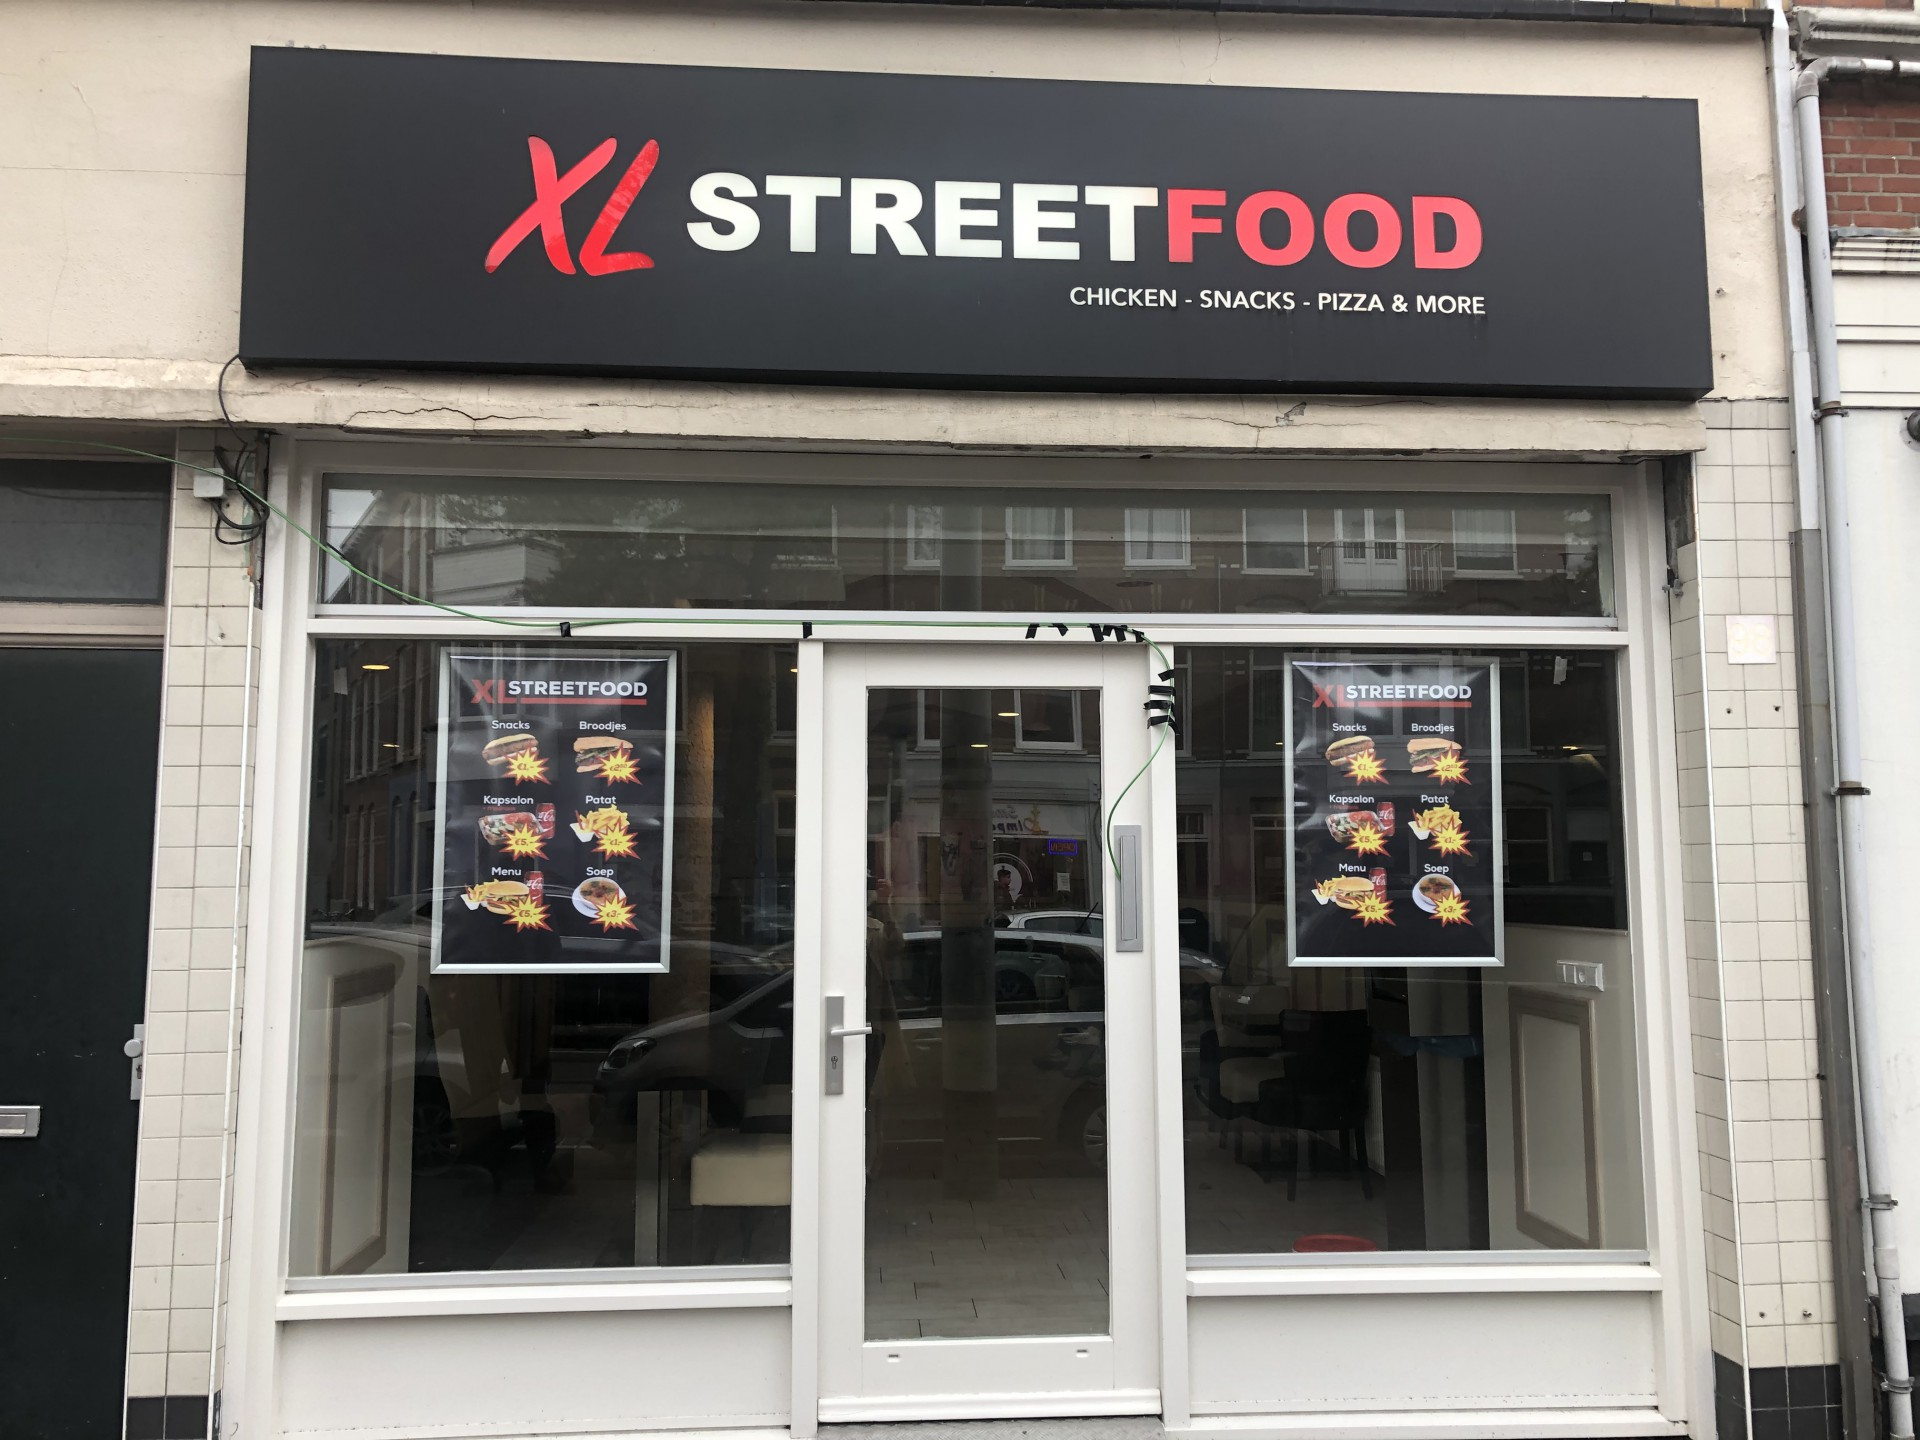 snackbar XL Streetfood